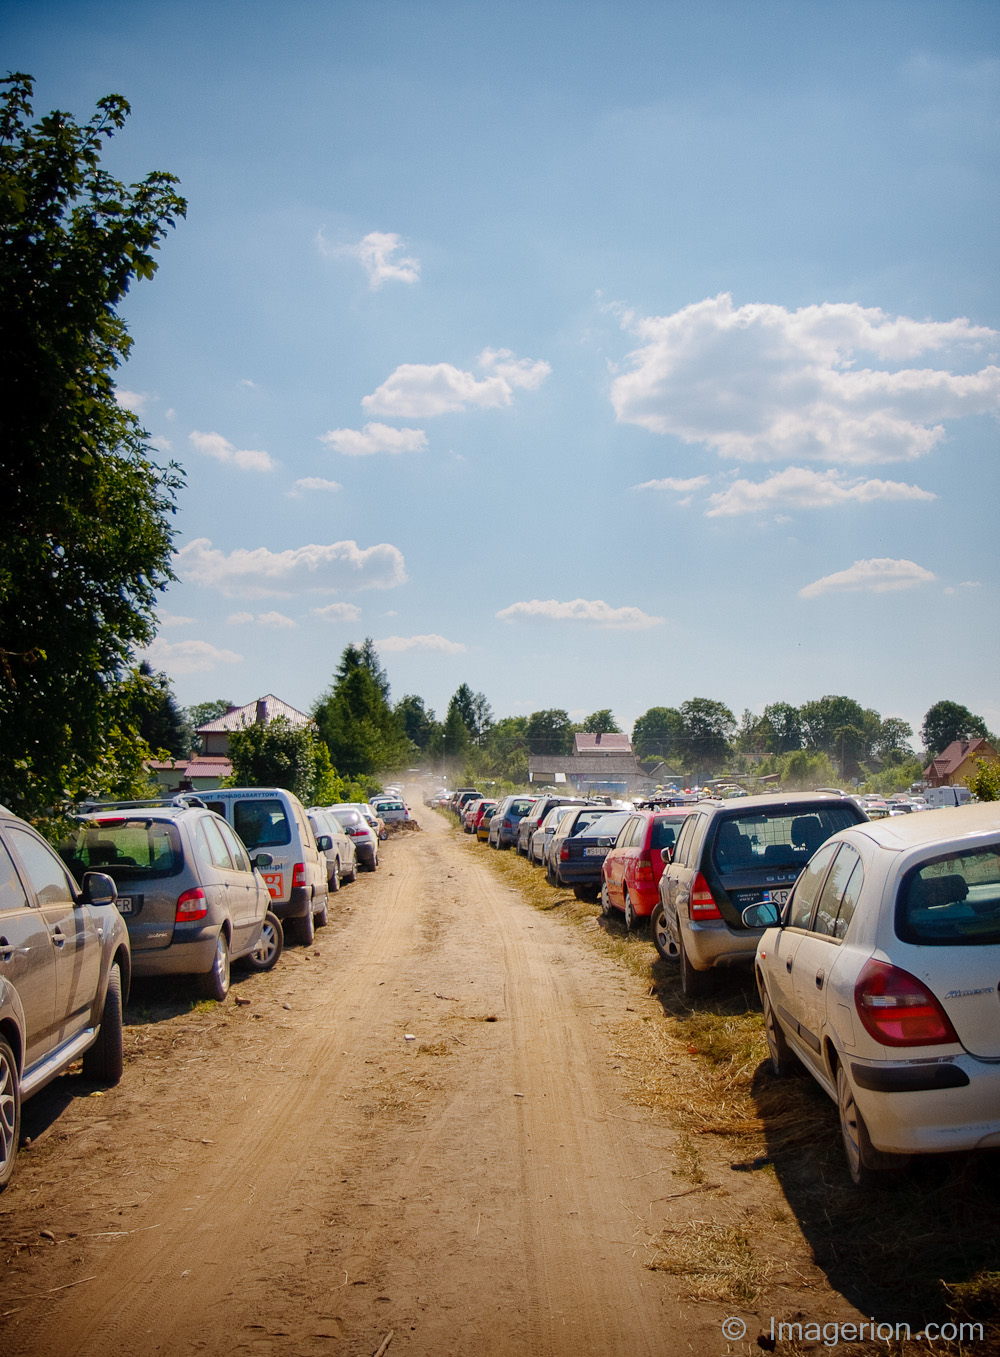 Two lines of cars parked by the dusty country road